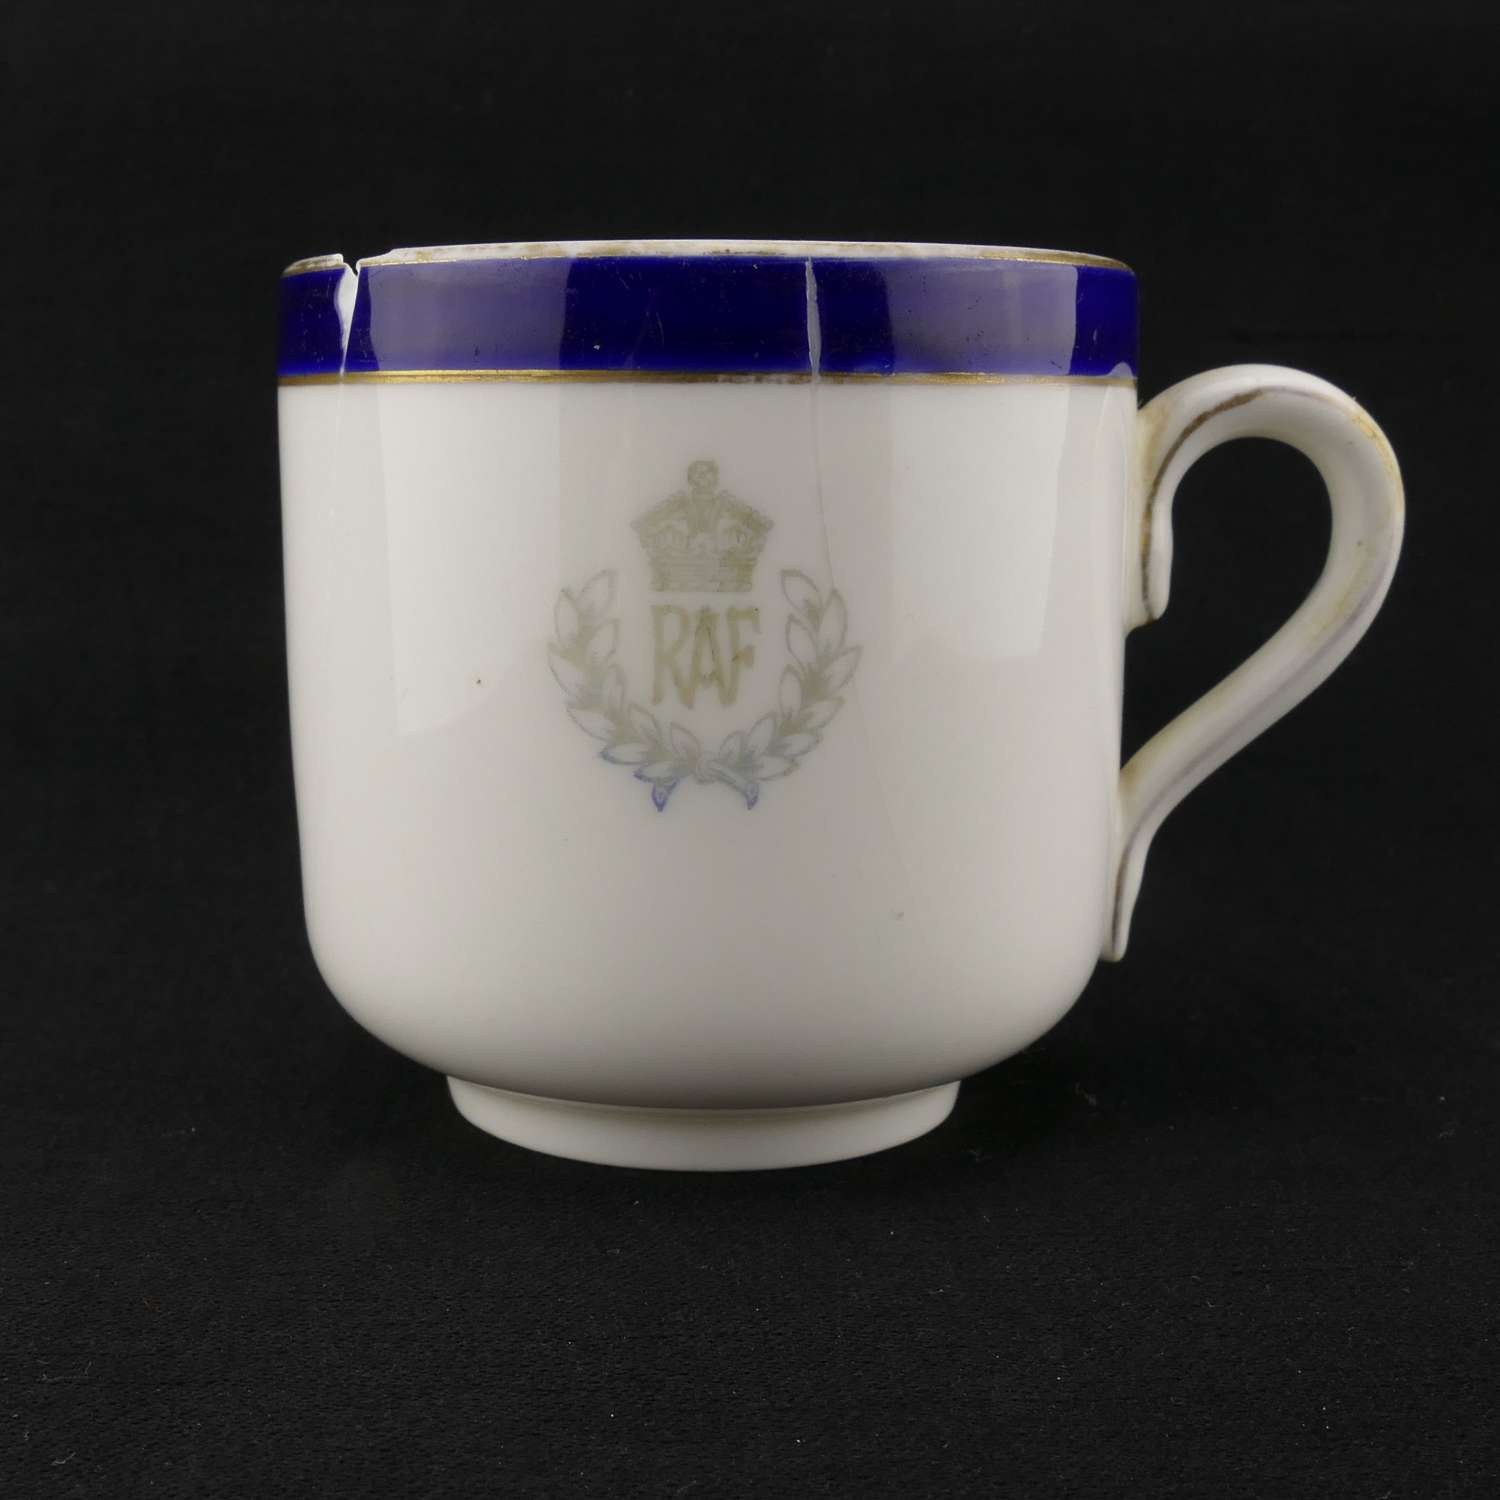 RAF Mess coffee cup